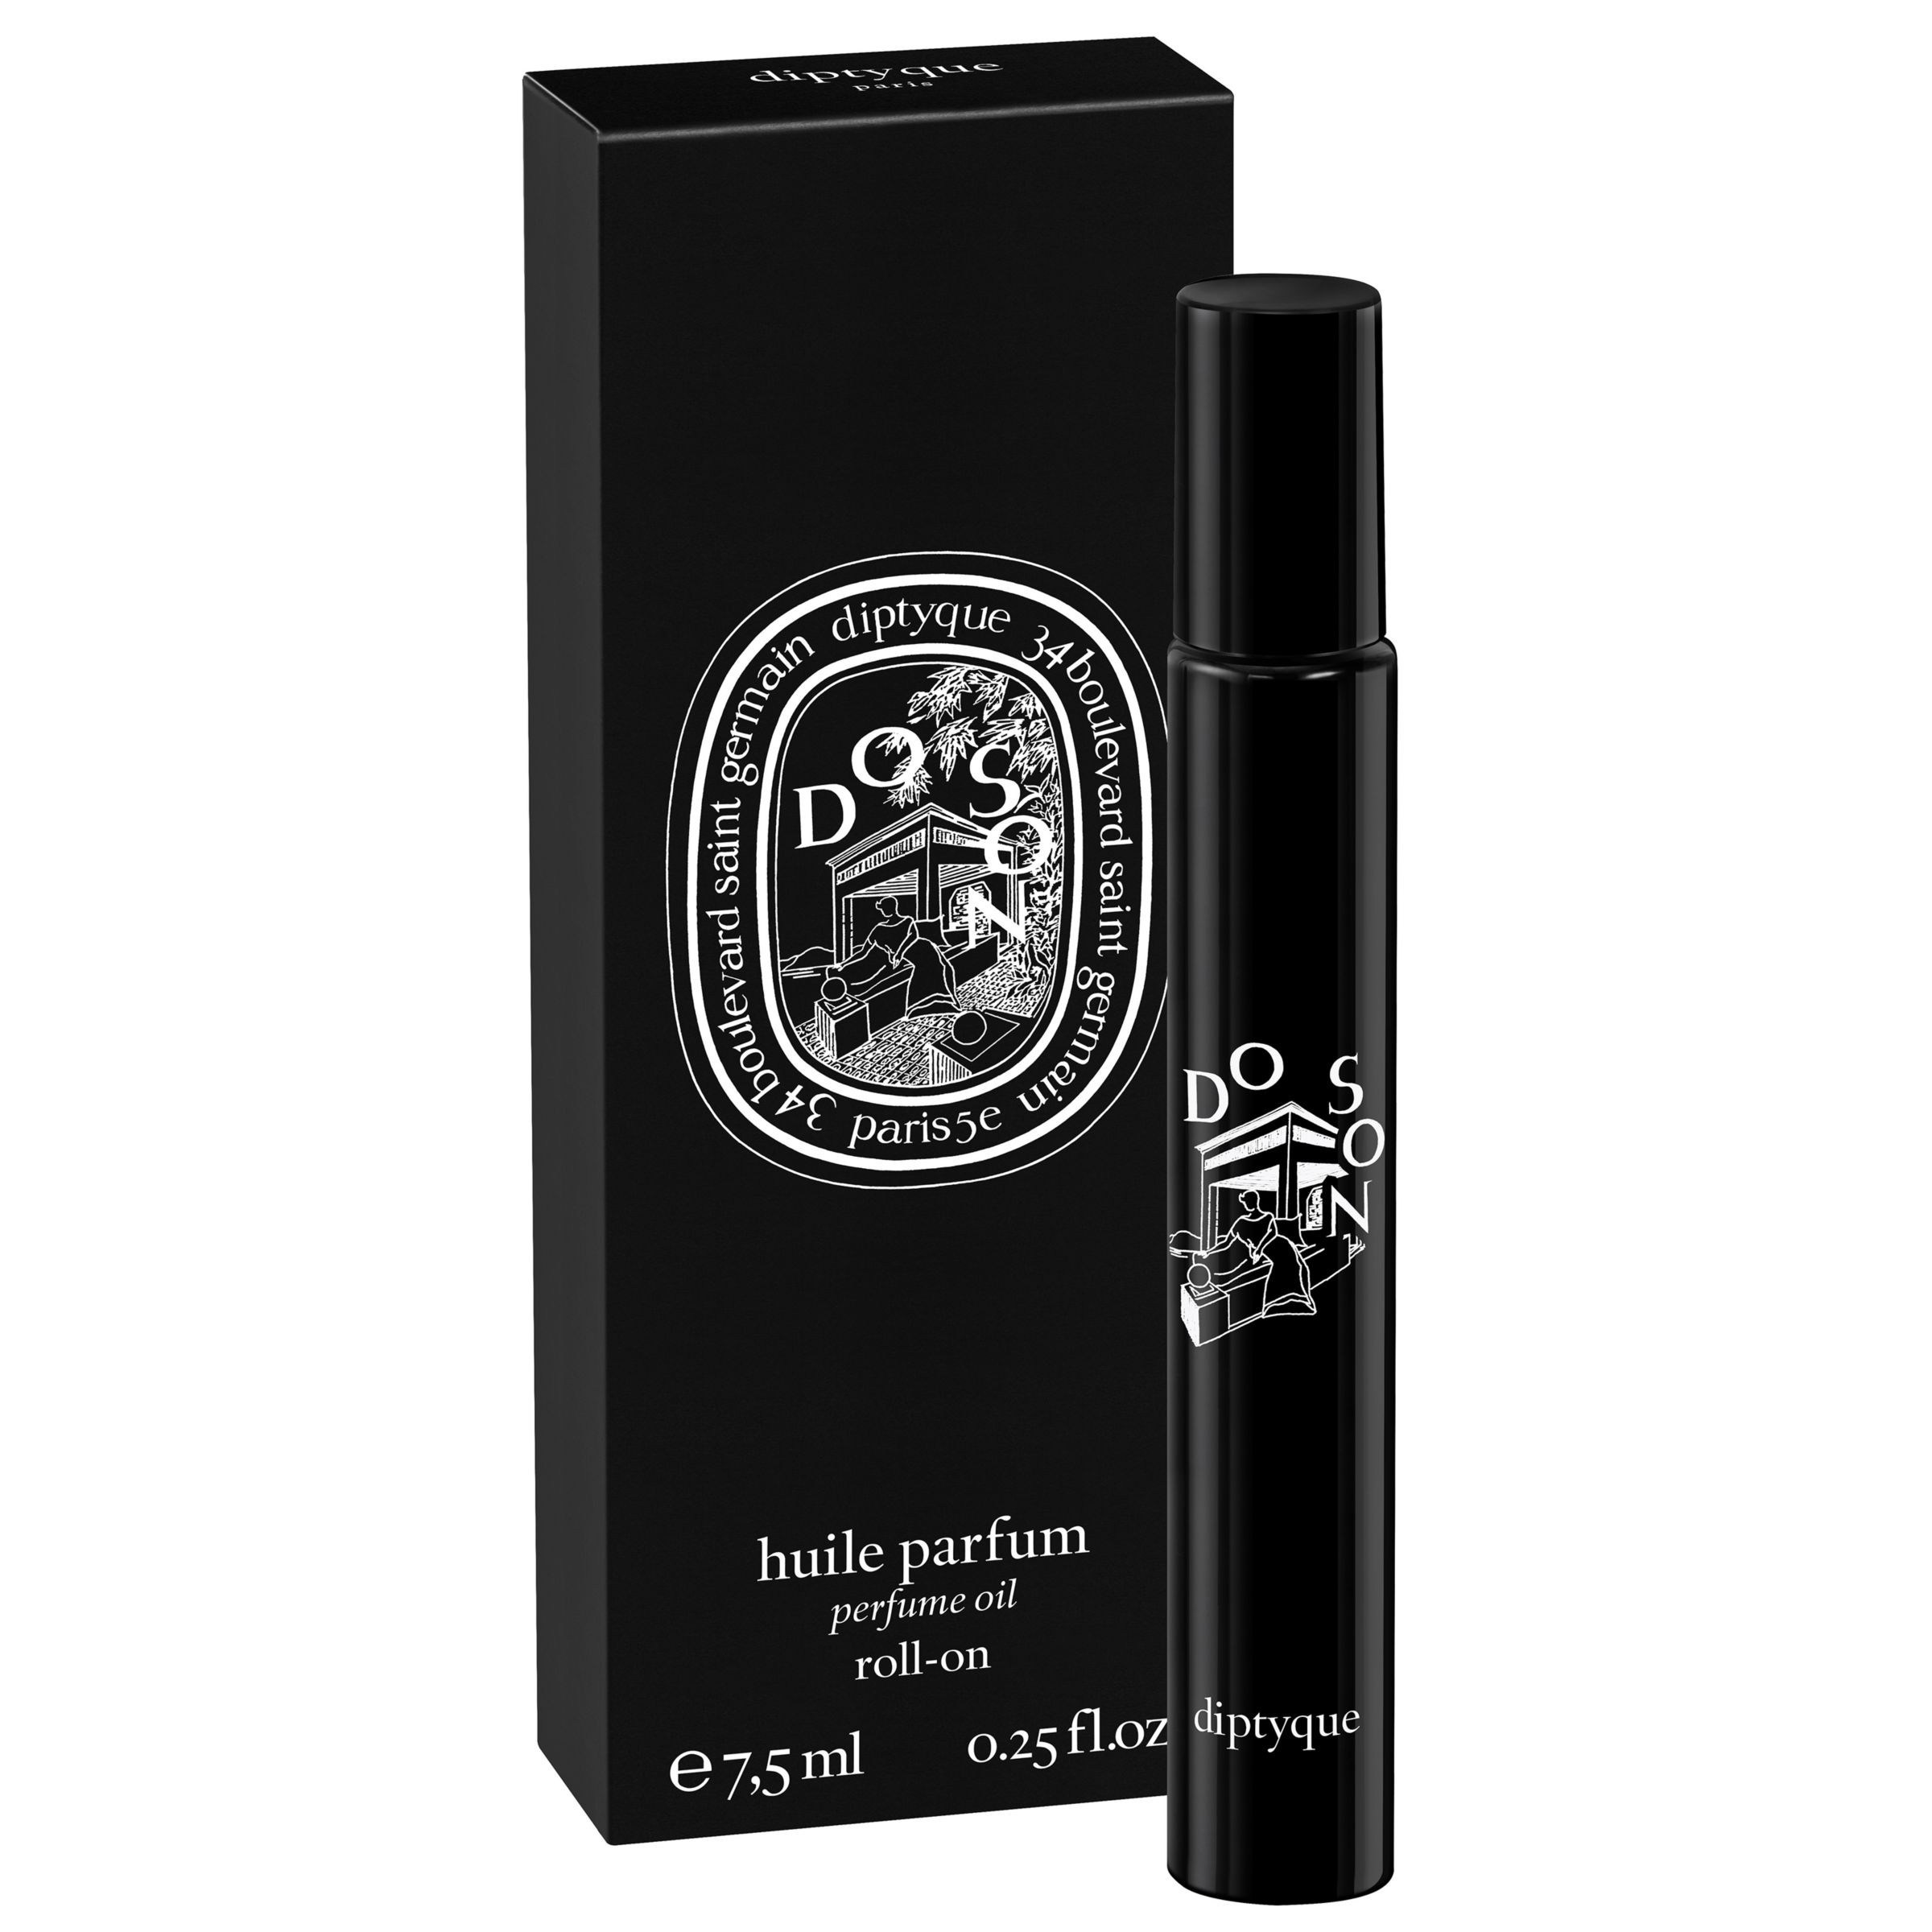 Diptyque Diptyque Do Son Perfume Oil Roll-On, 7.5ml